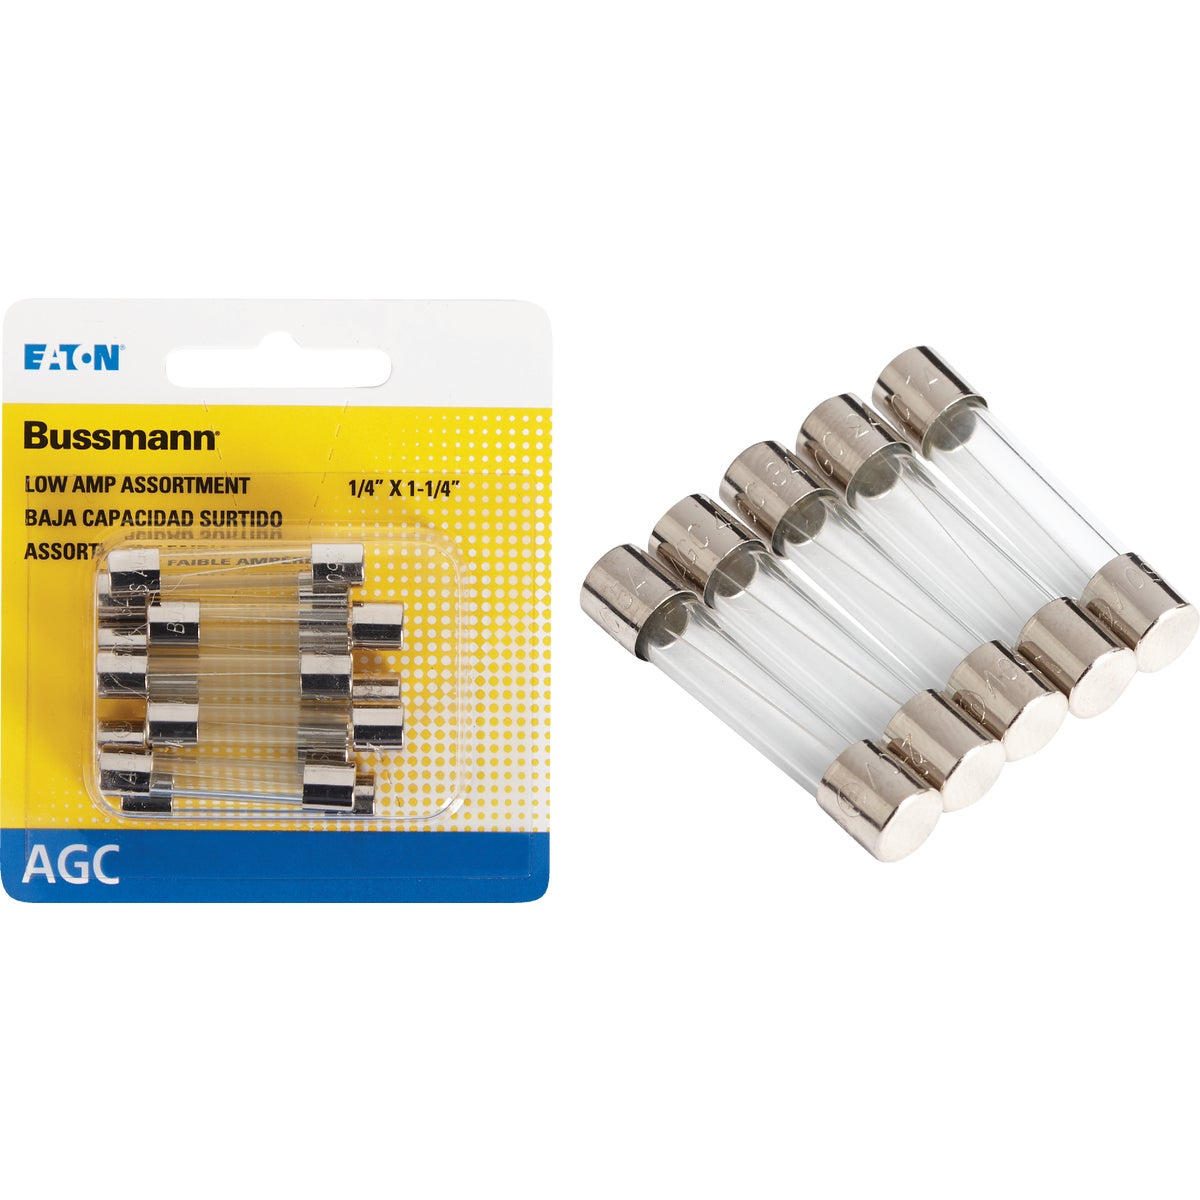 10PK FUSE ASSORTMENT - BP/AGC-AL10-RP by Bussmann Cooper